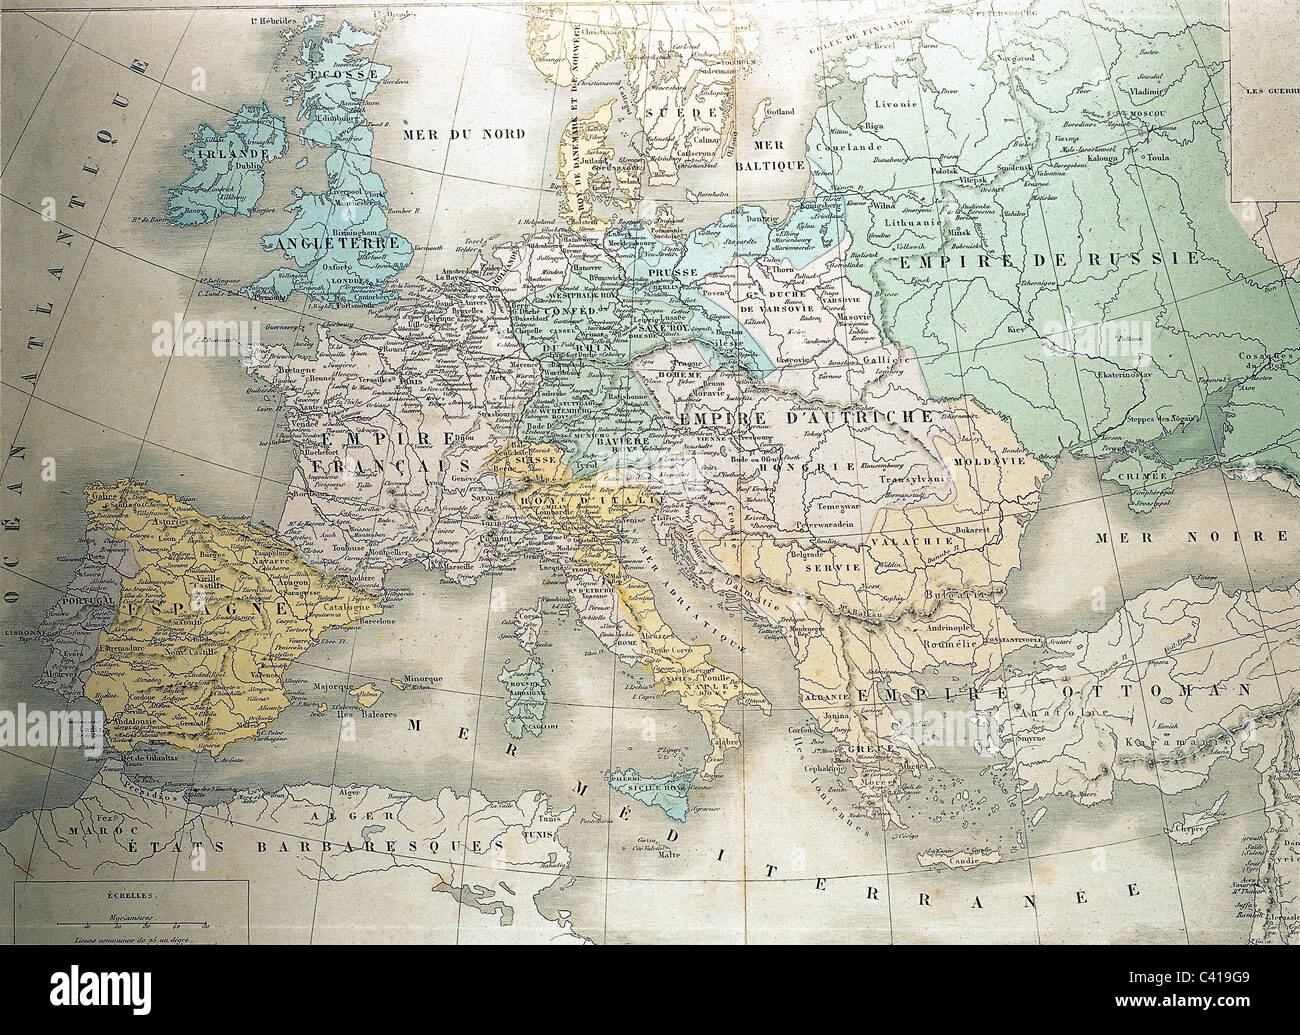 maps historical maps Europe circa 1810 under